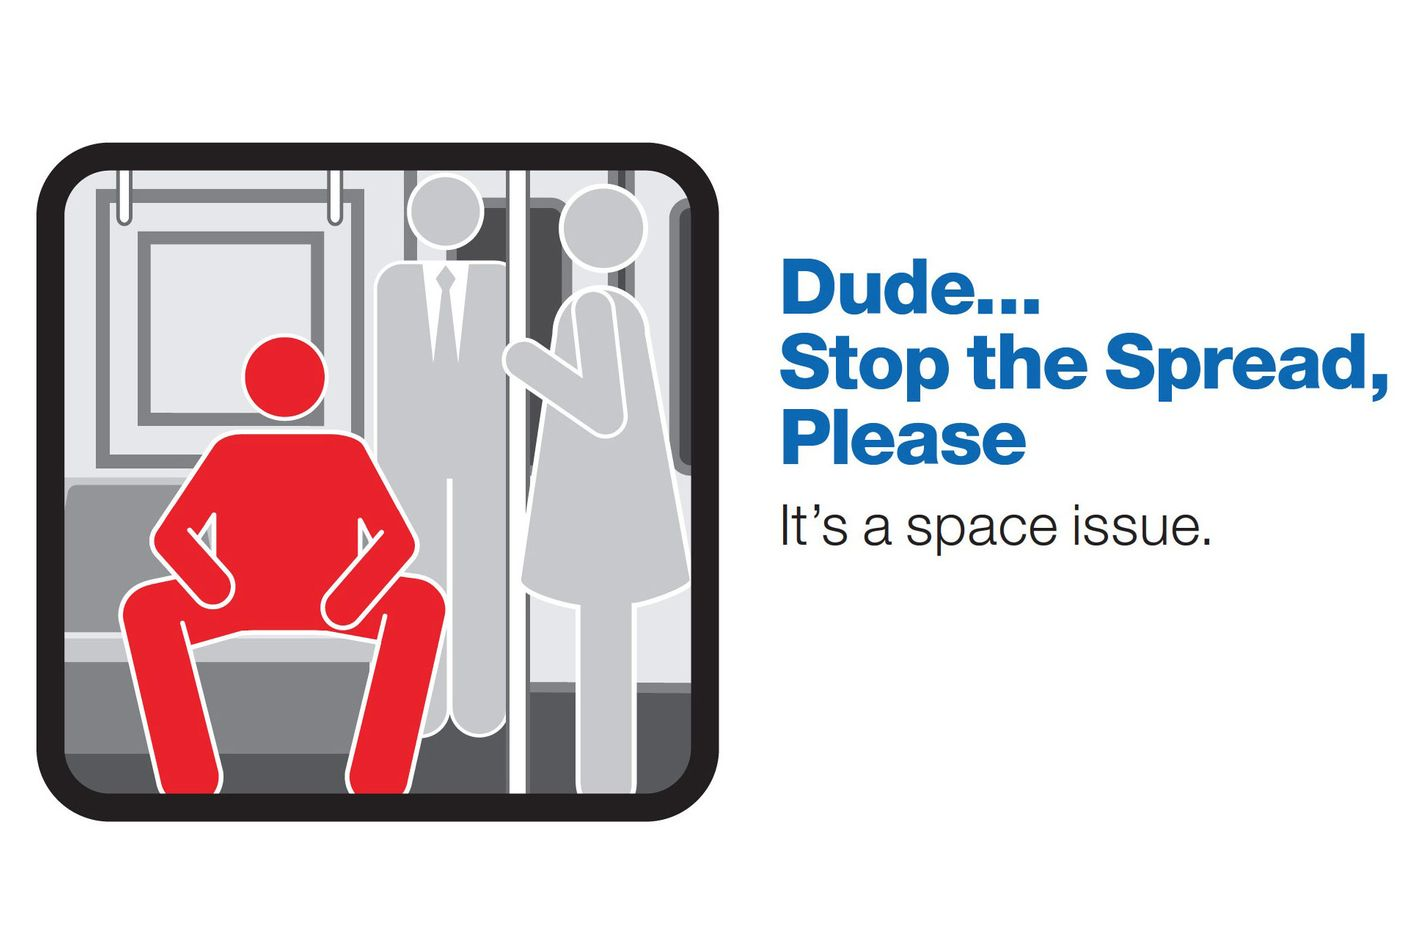 Here are the new mta ads targeting manspreaders subway eaters here are the new mta ads targeting manspreaders subway eaters and more biocorpaavc Gallery